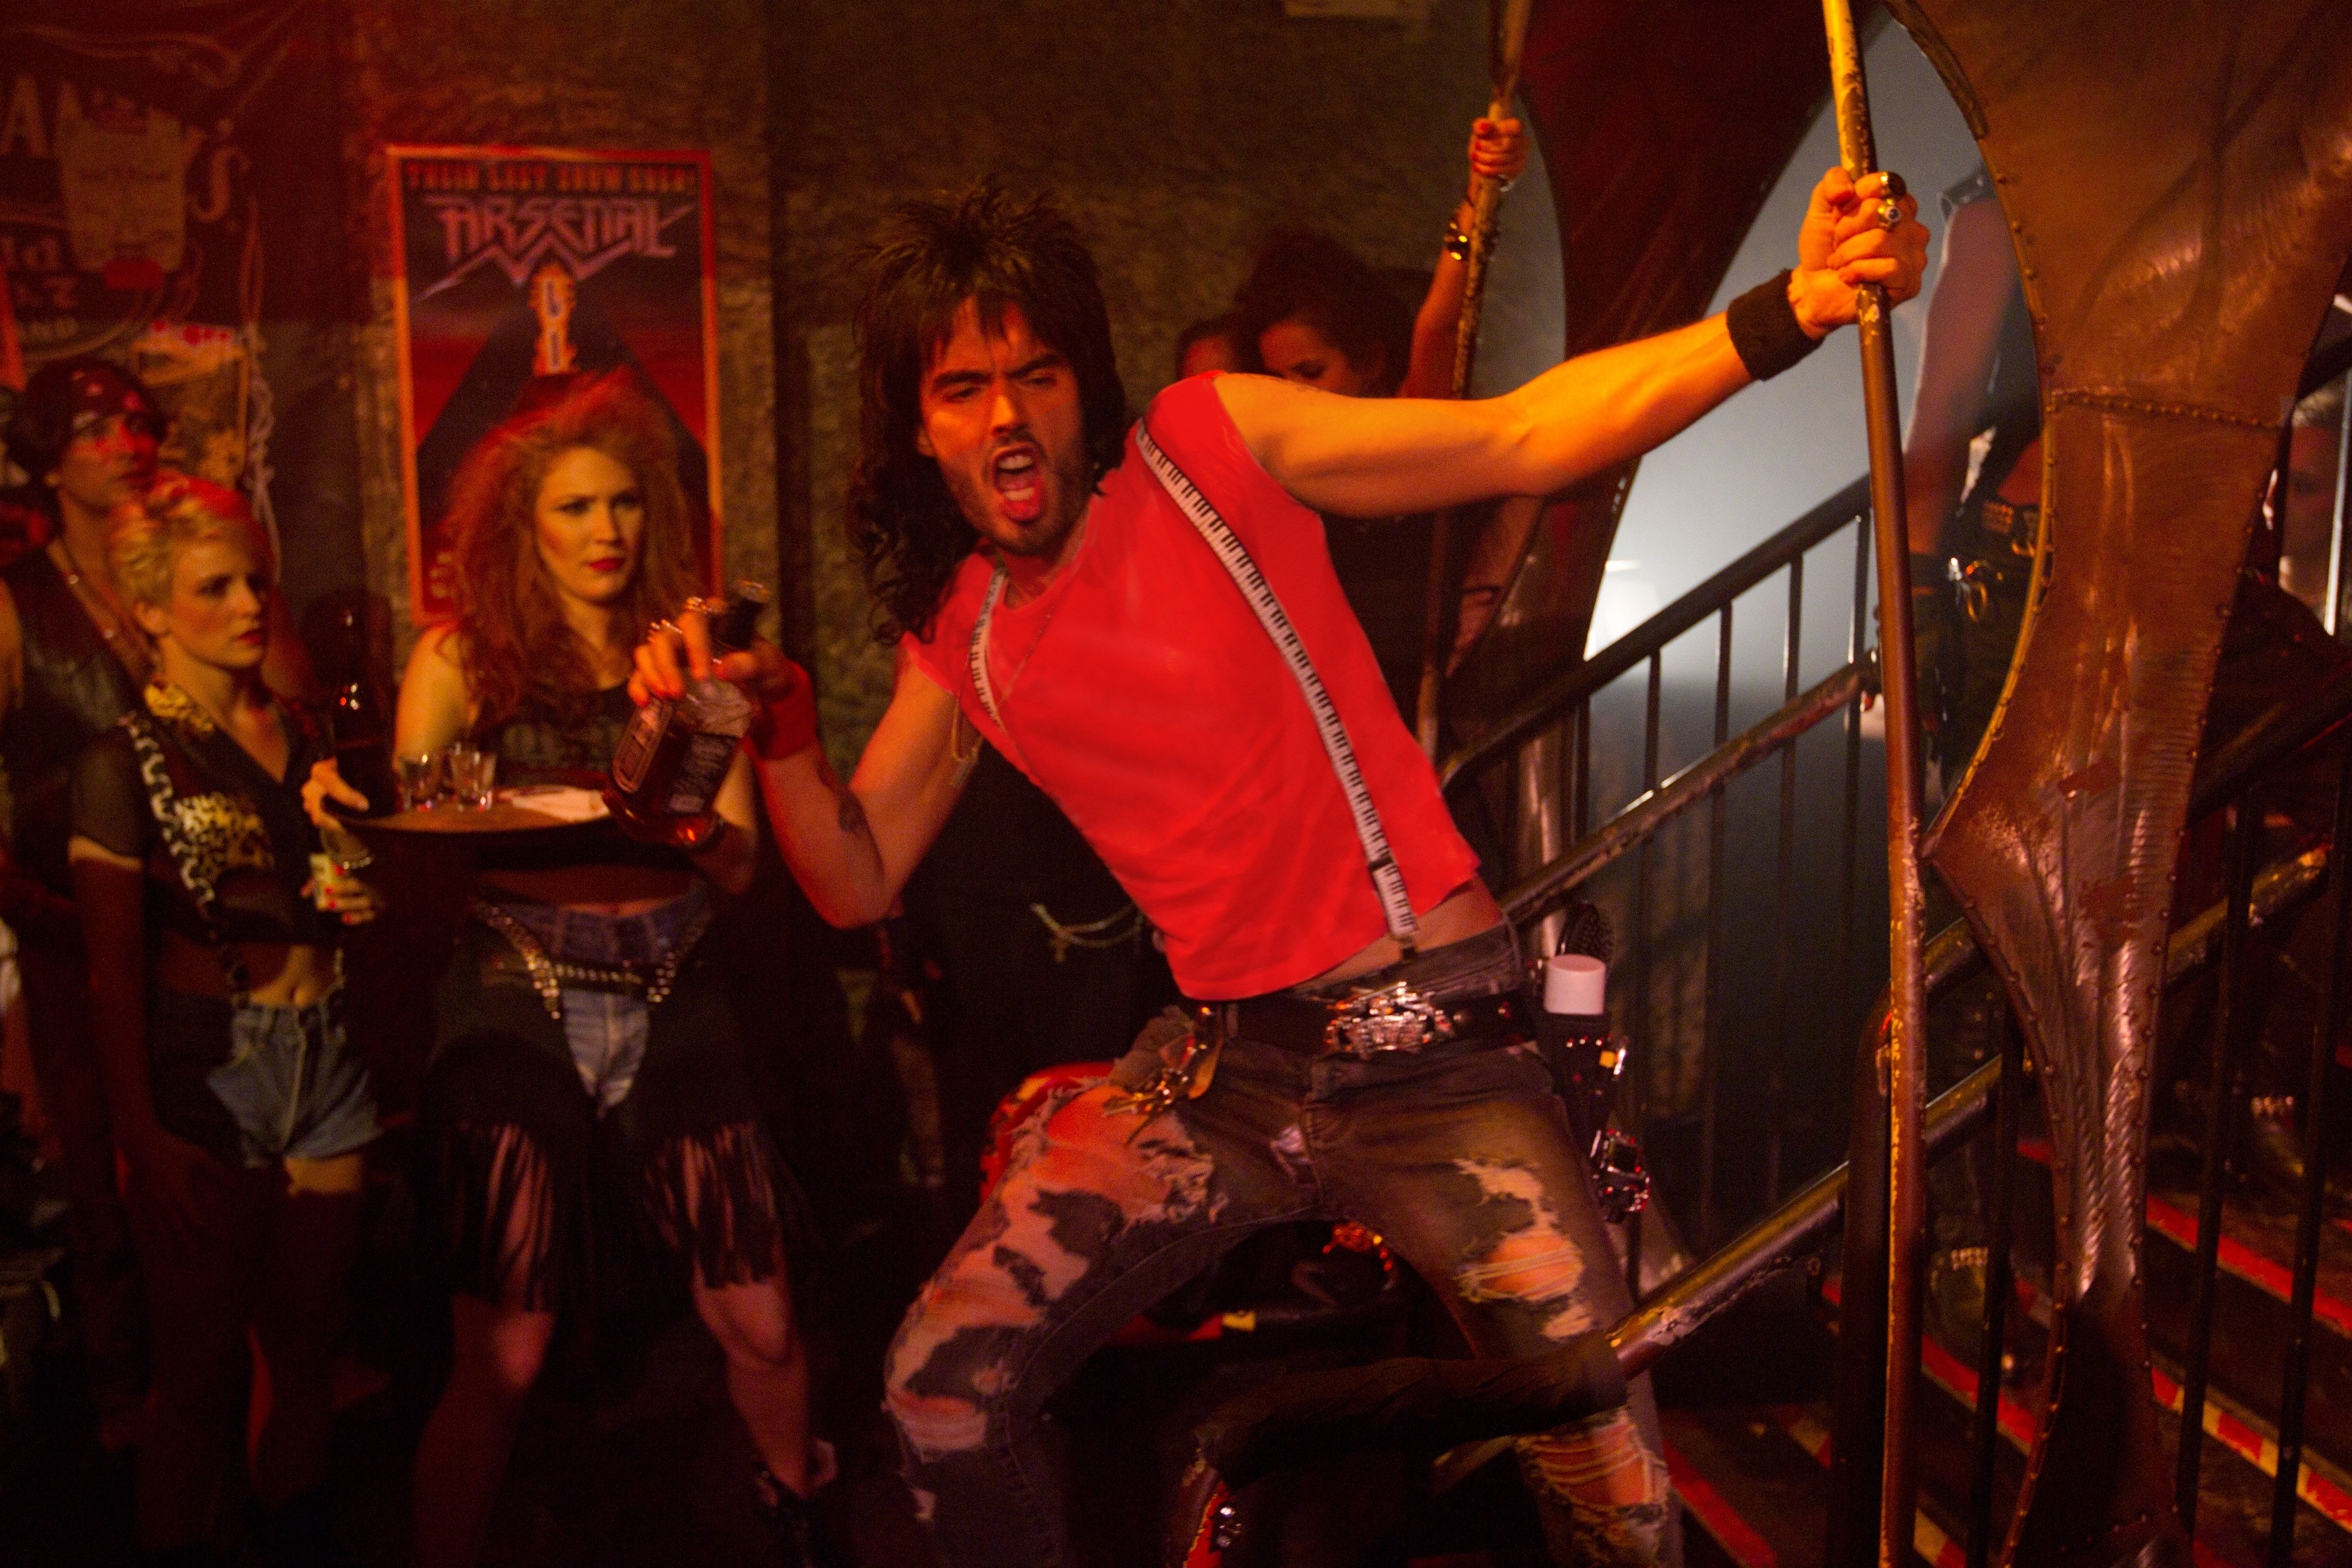 ROCK OF AGES Movie Images Featuring Tom Cruise | Collider